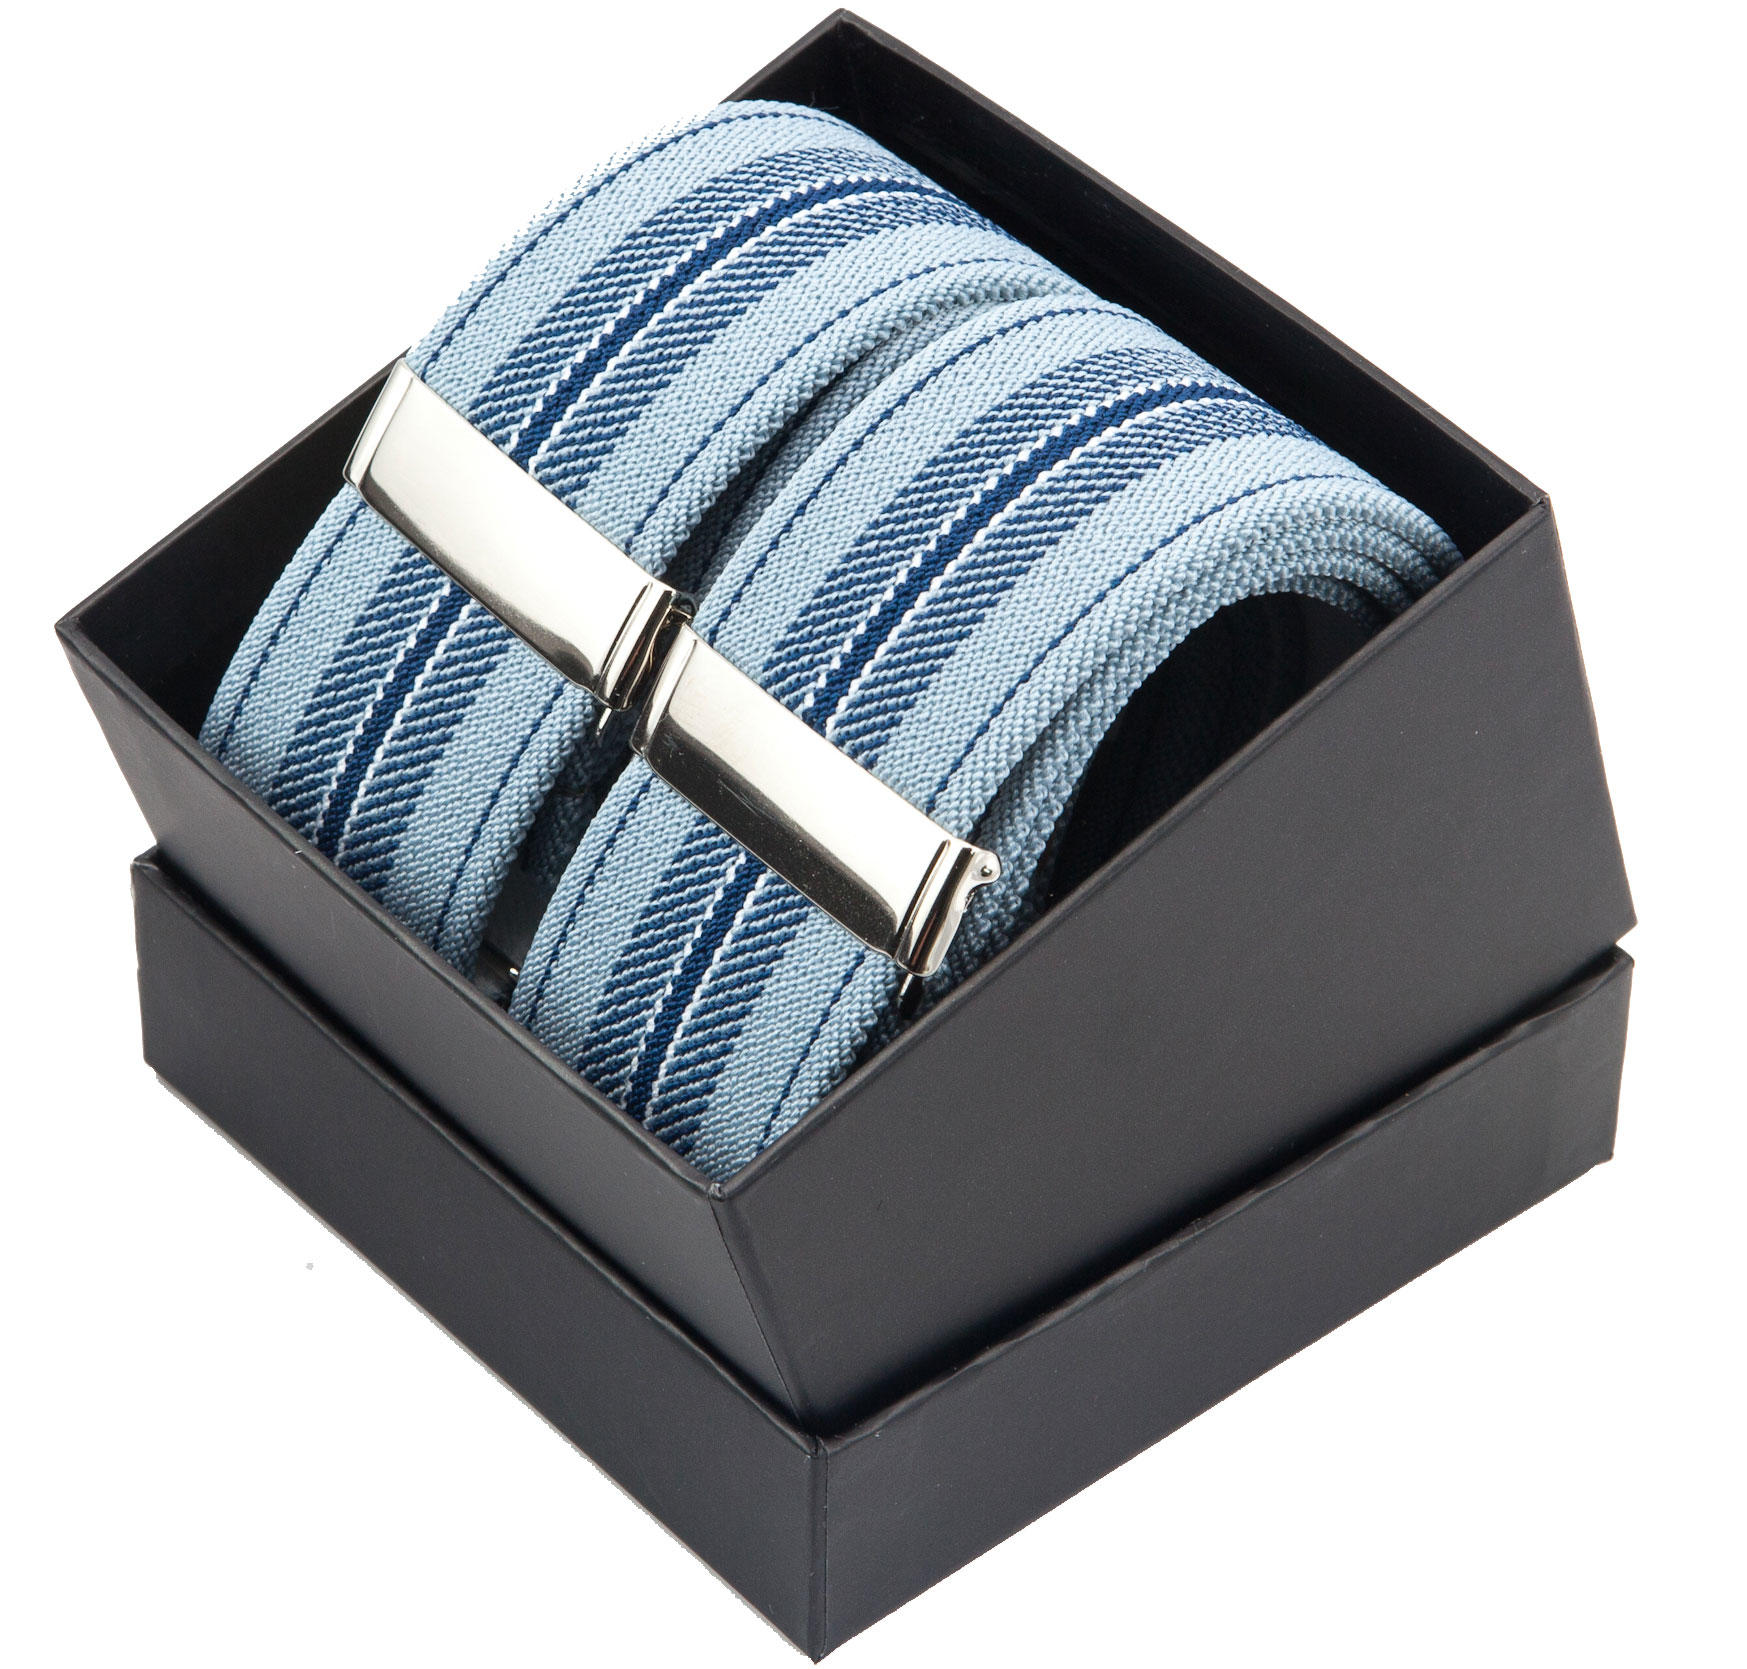 Blue Stripe Y Braces from Cuffs & Co